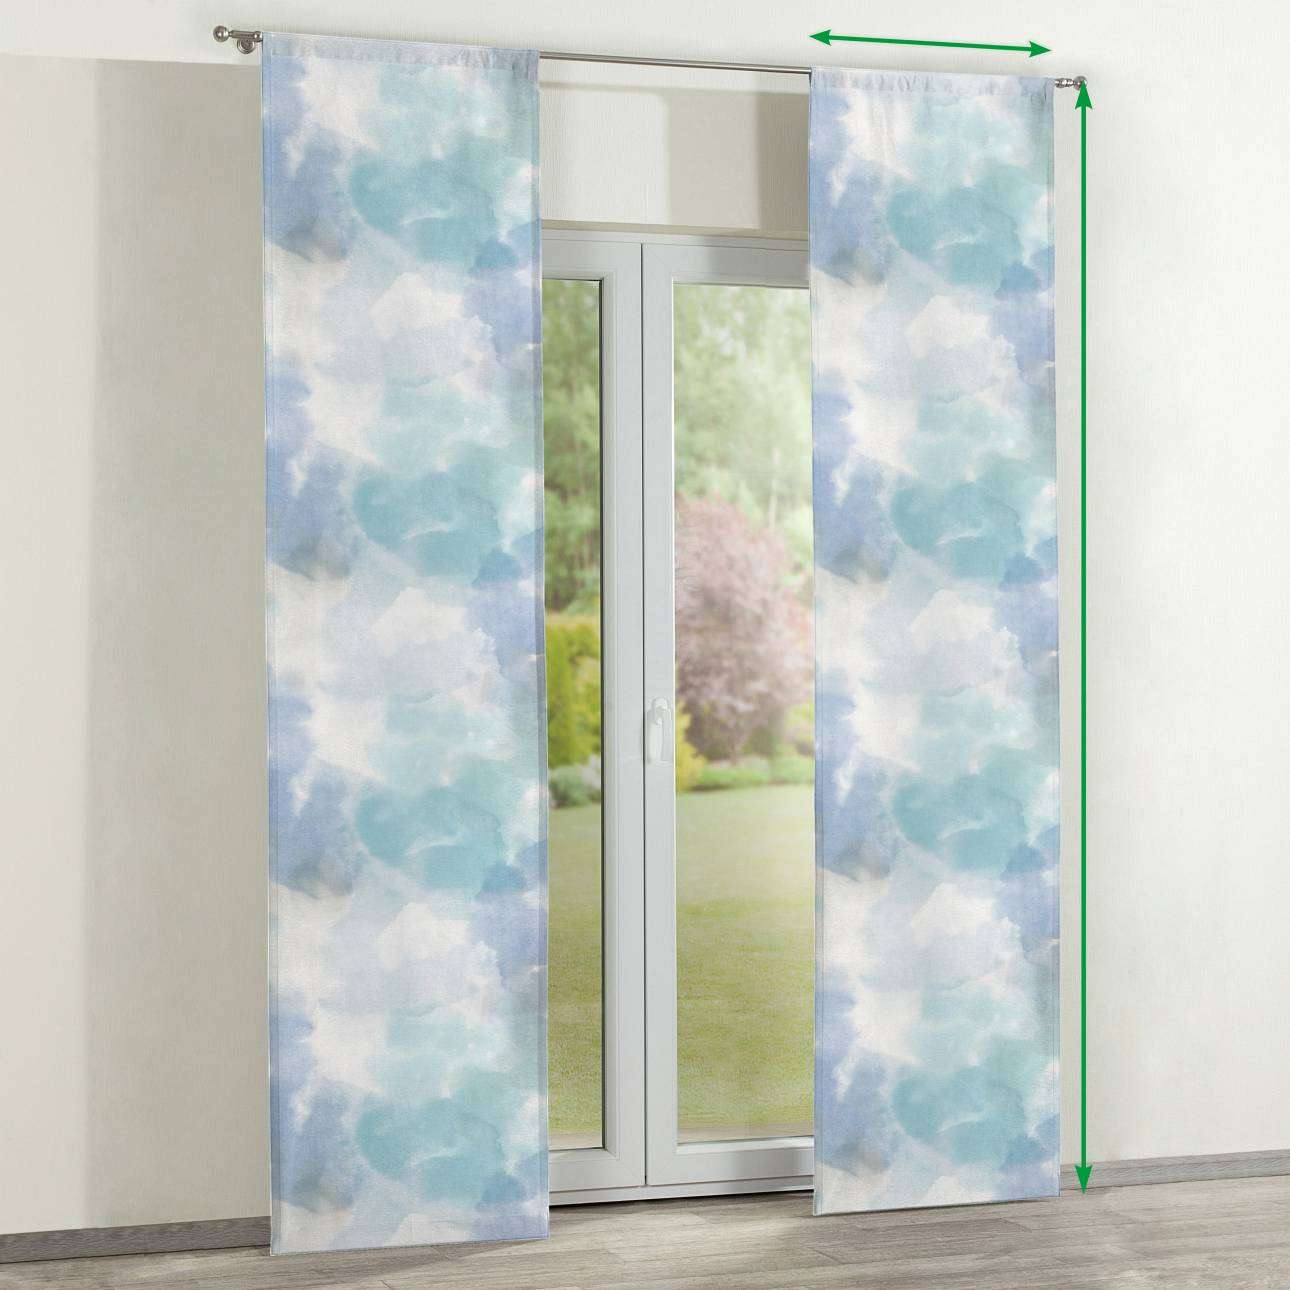 Slot panel curtains – Set of 2 in collection Aquarelle, fabric: 140-67